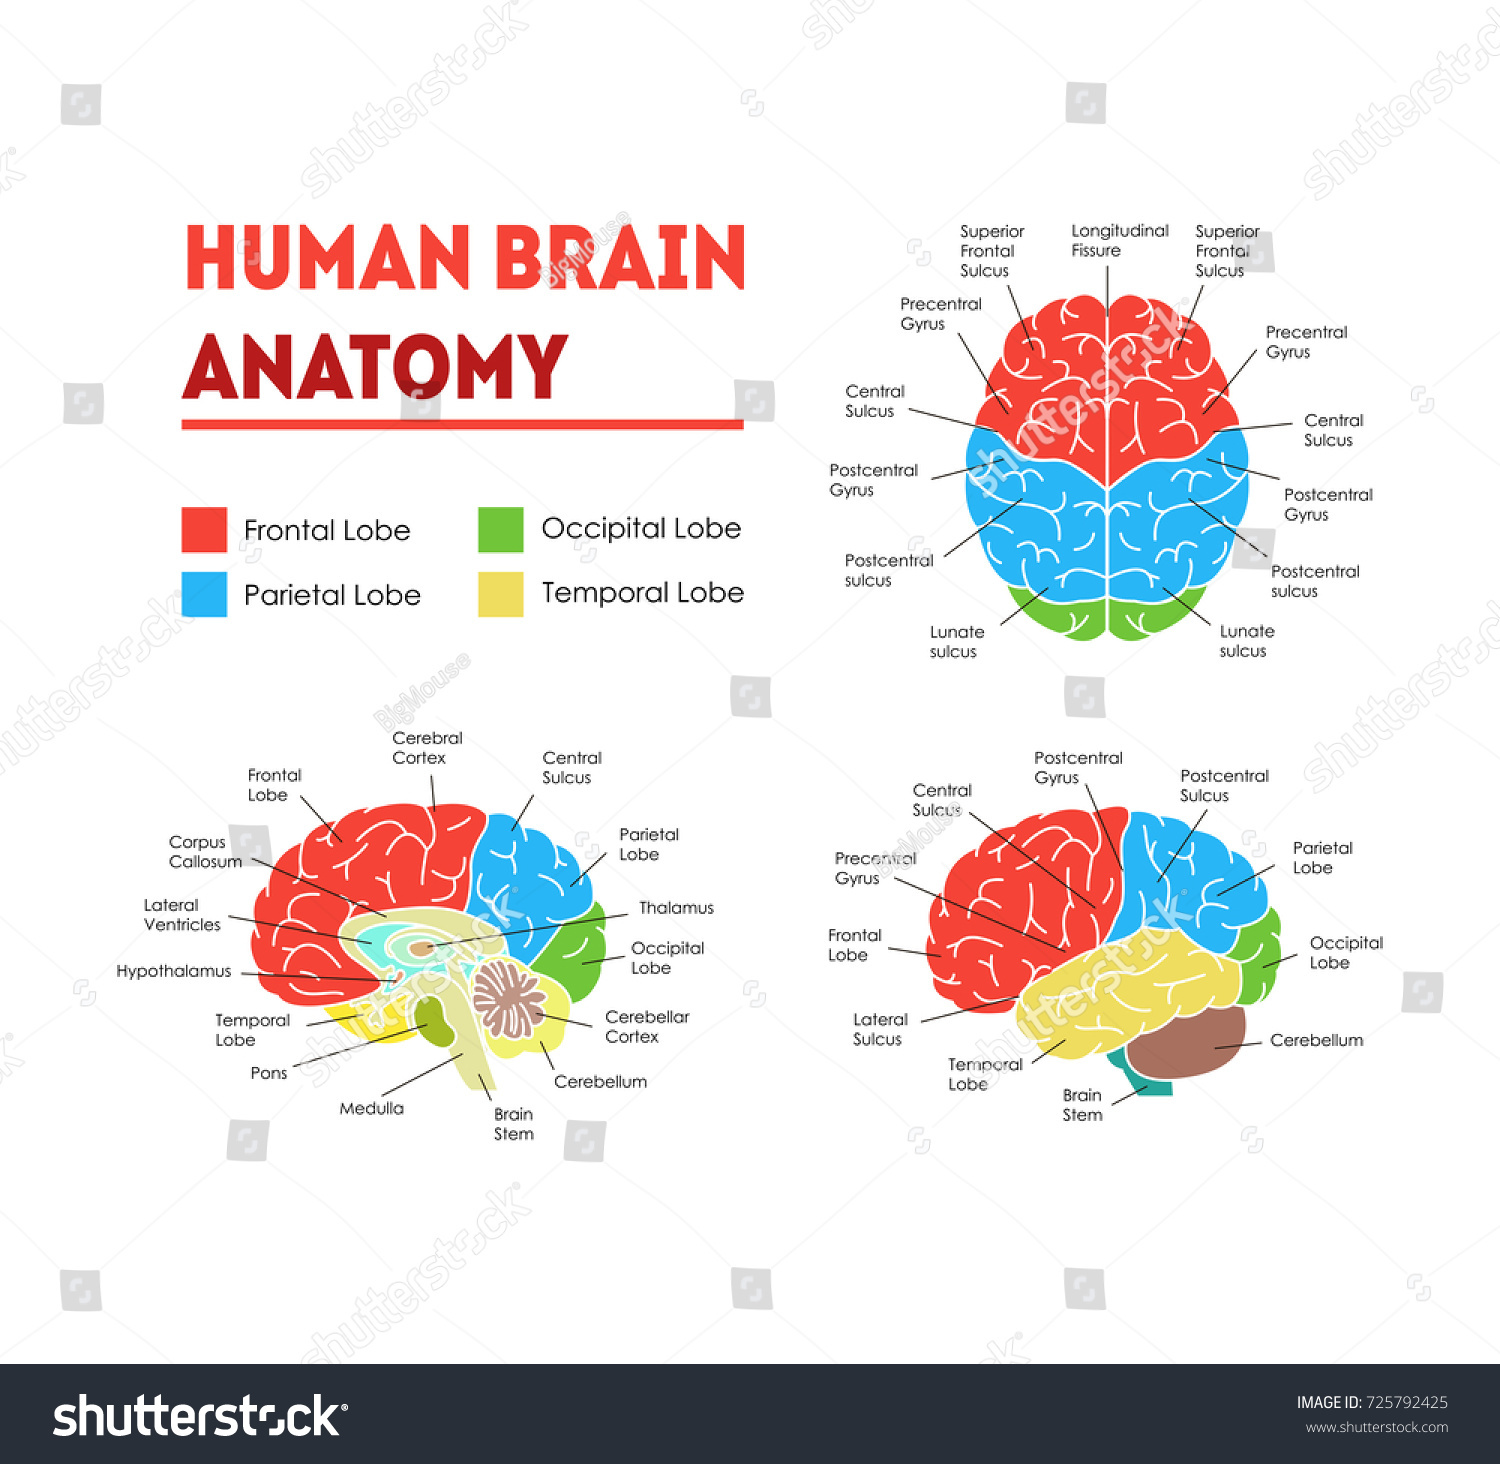 Human Brain Anatomy Infographic Card Poster Stock Vector (Royalty ...